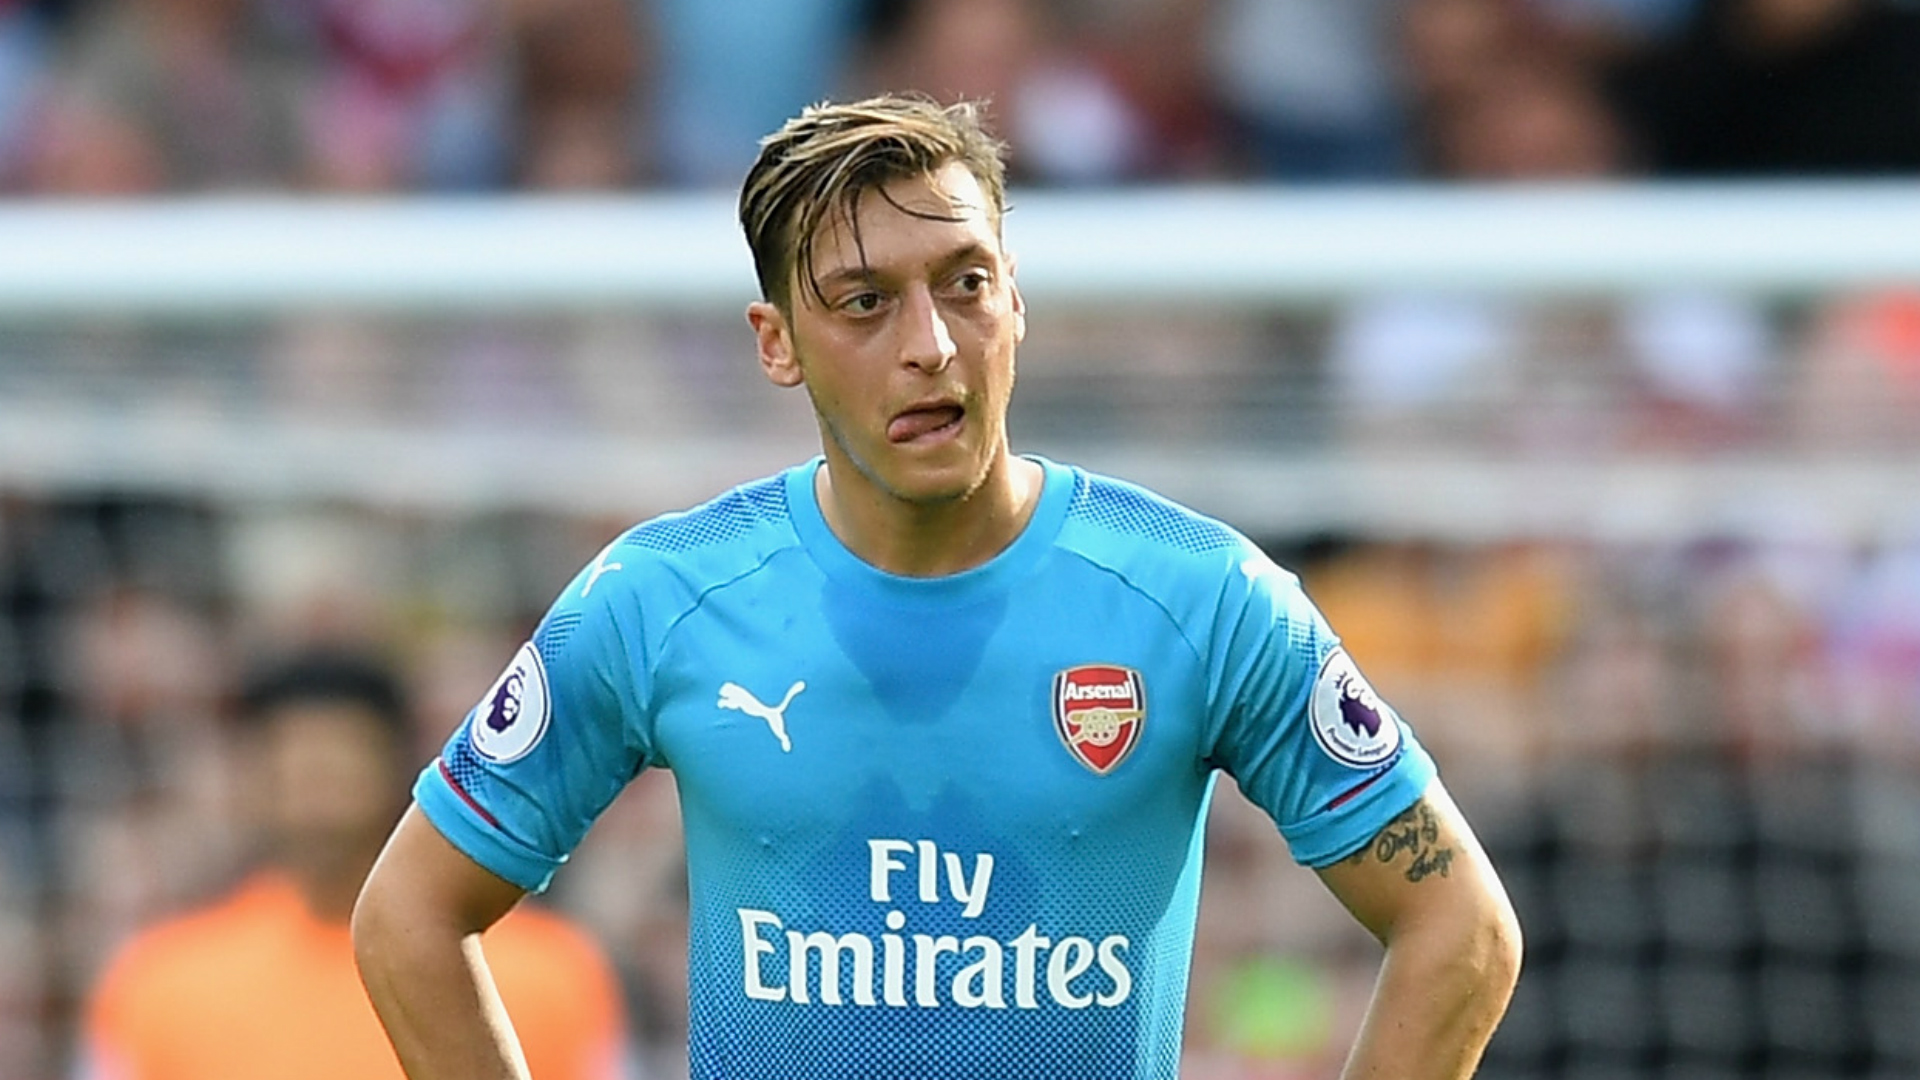 Ozil comments laughable: Arsenal great Ian Wright